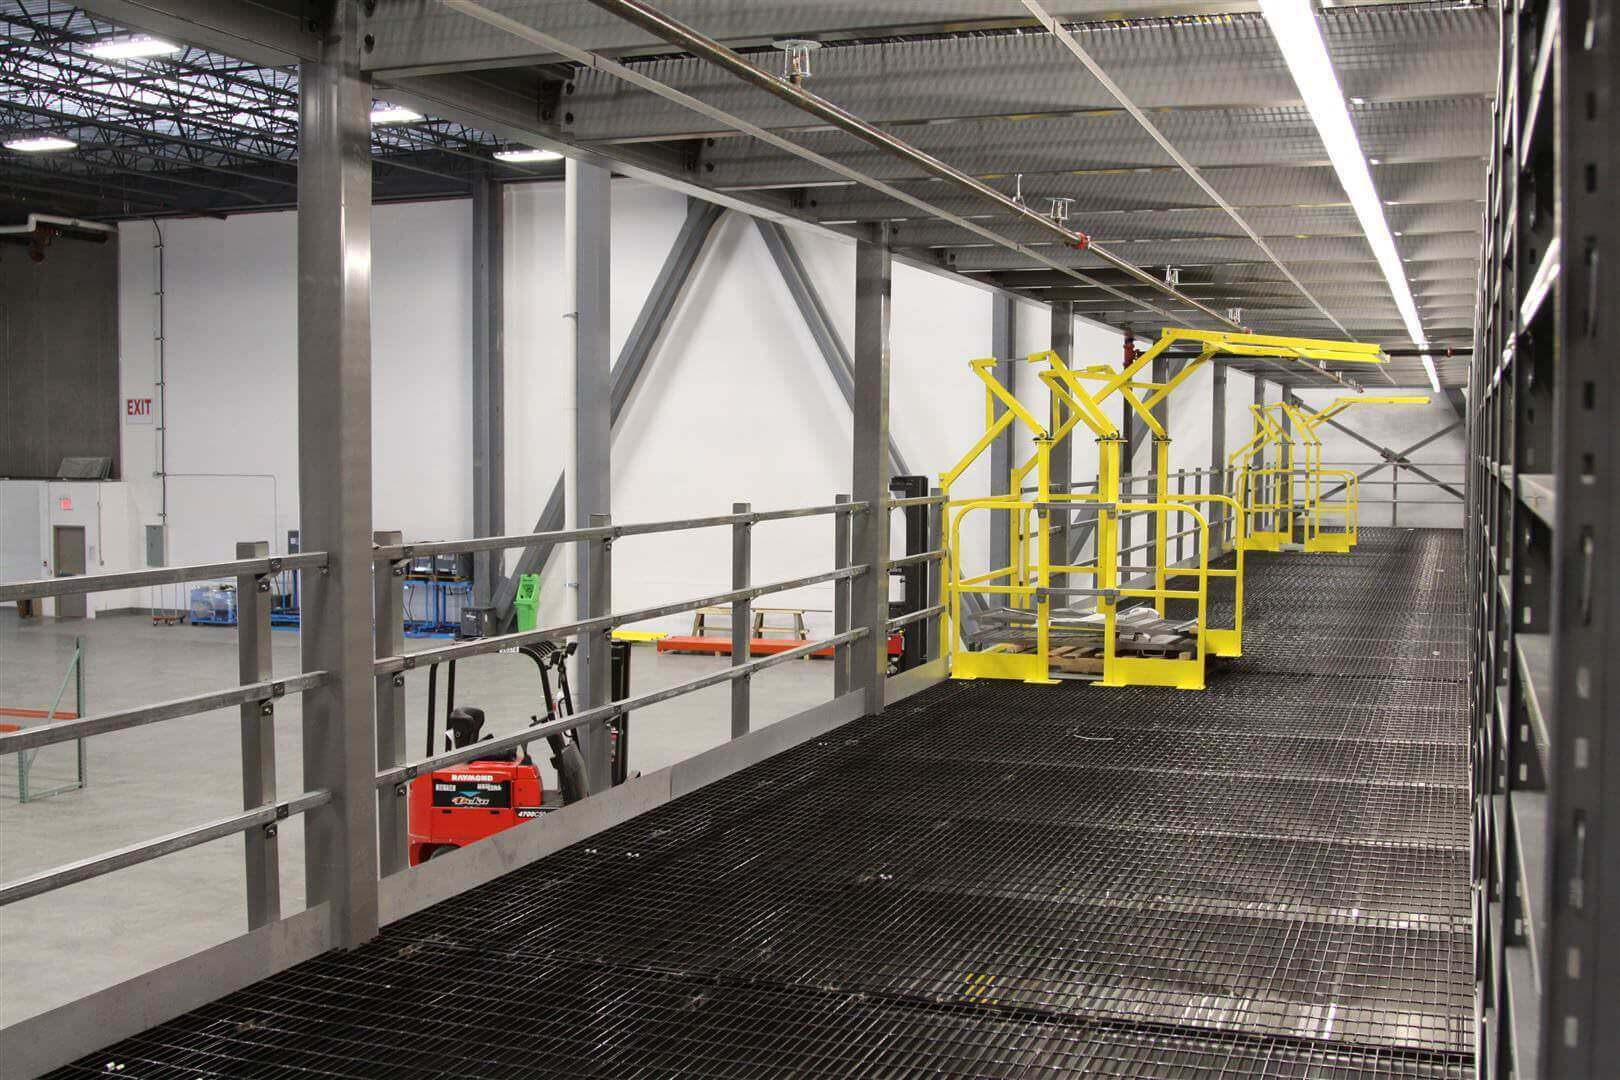 Mezzanine Platform with Bar Grate and Pivot Gate